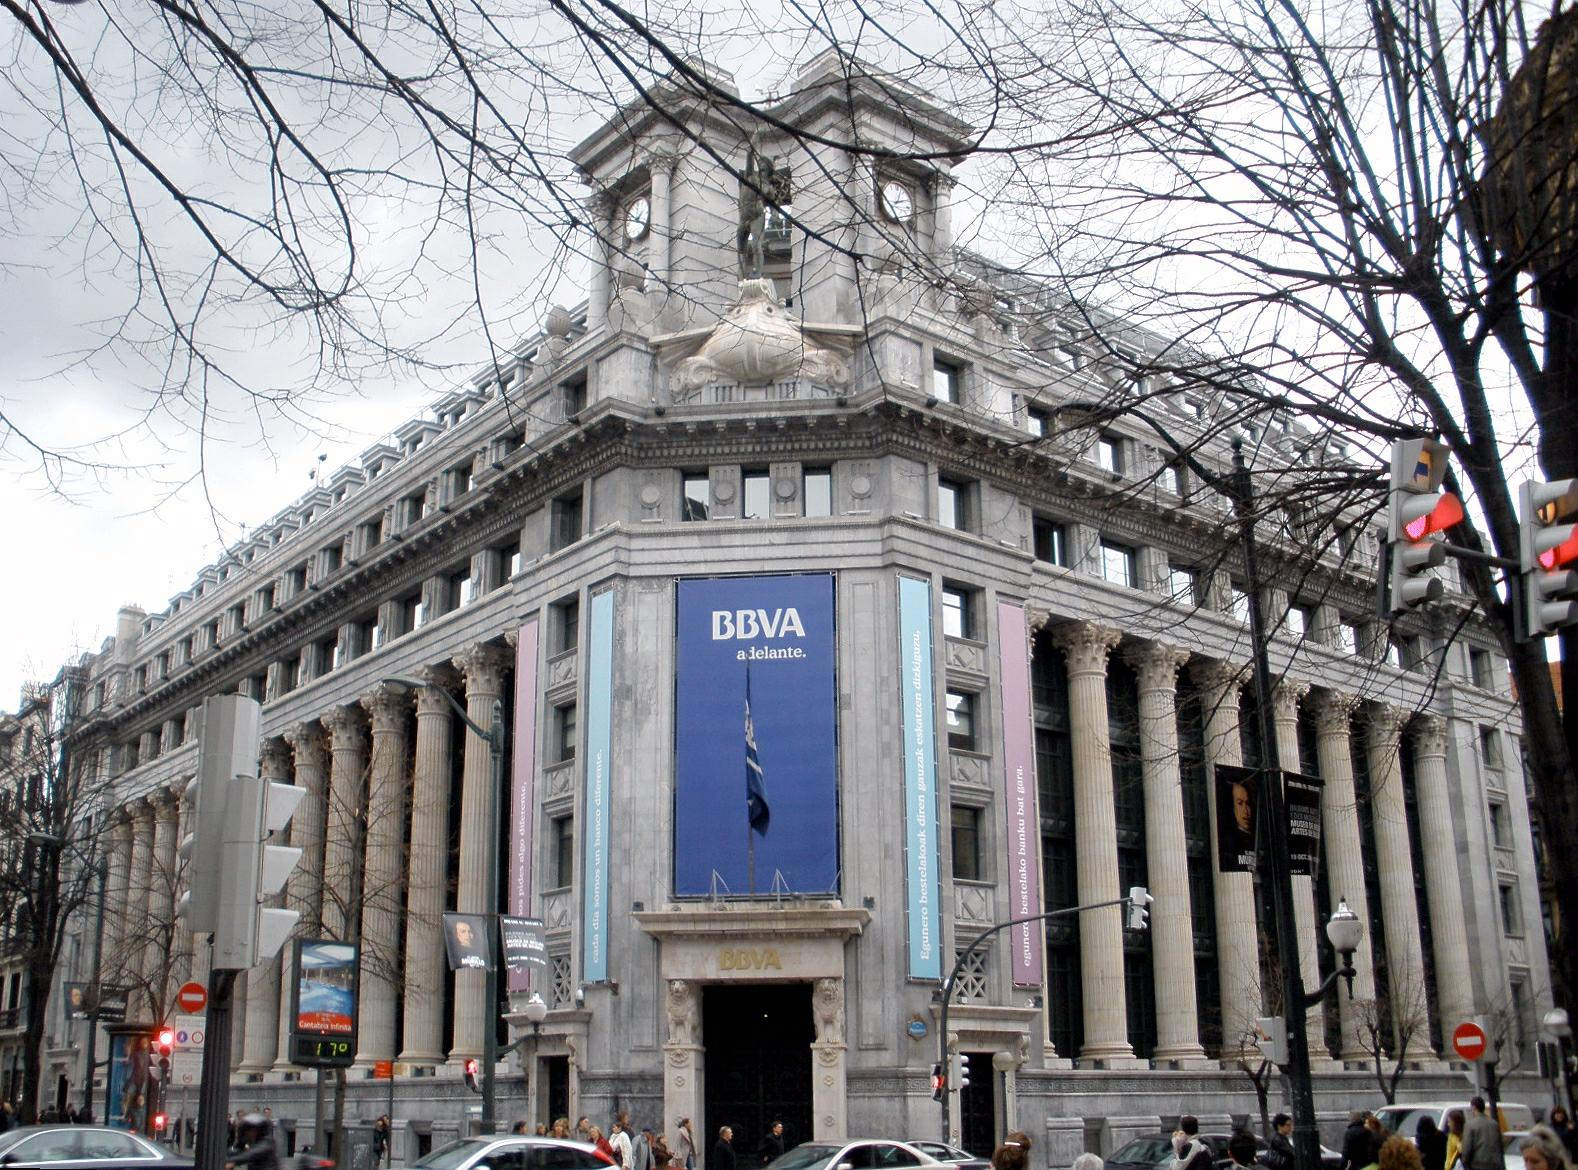 Just-In: Spain's Banking Giant BBVA Launches Bitcoin Trading Service in Switzerland